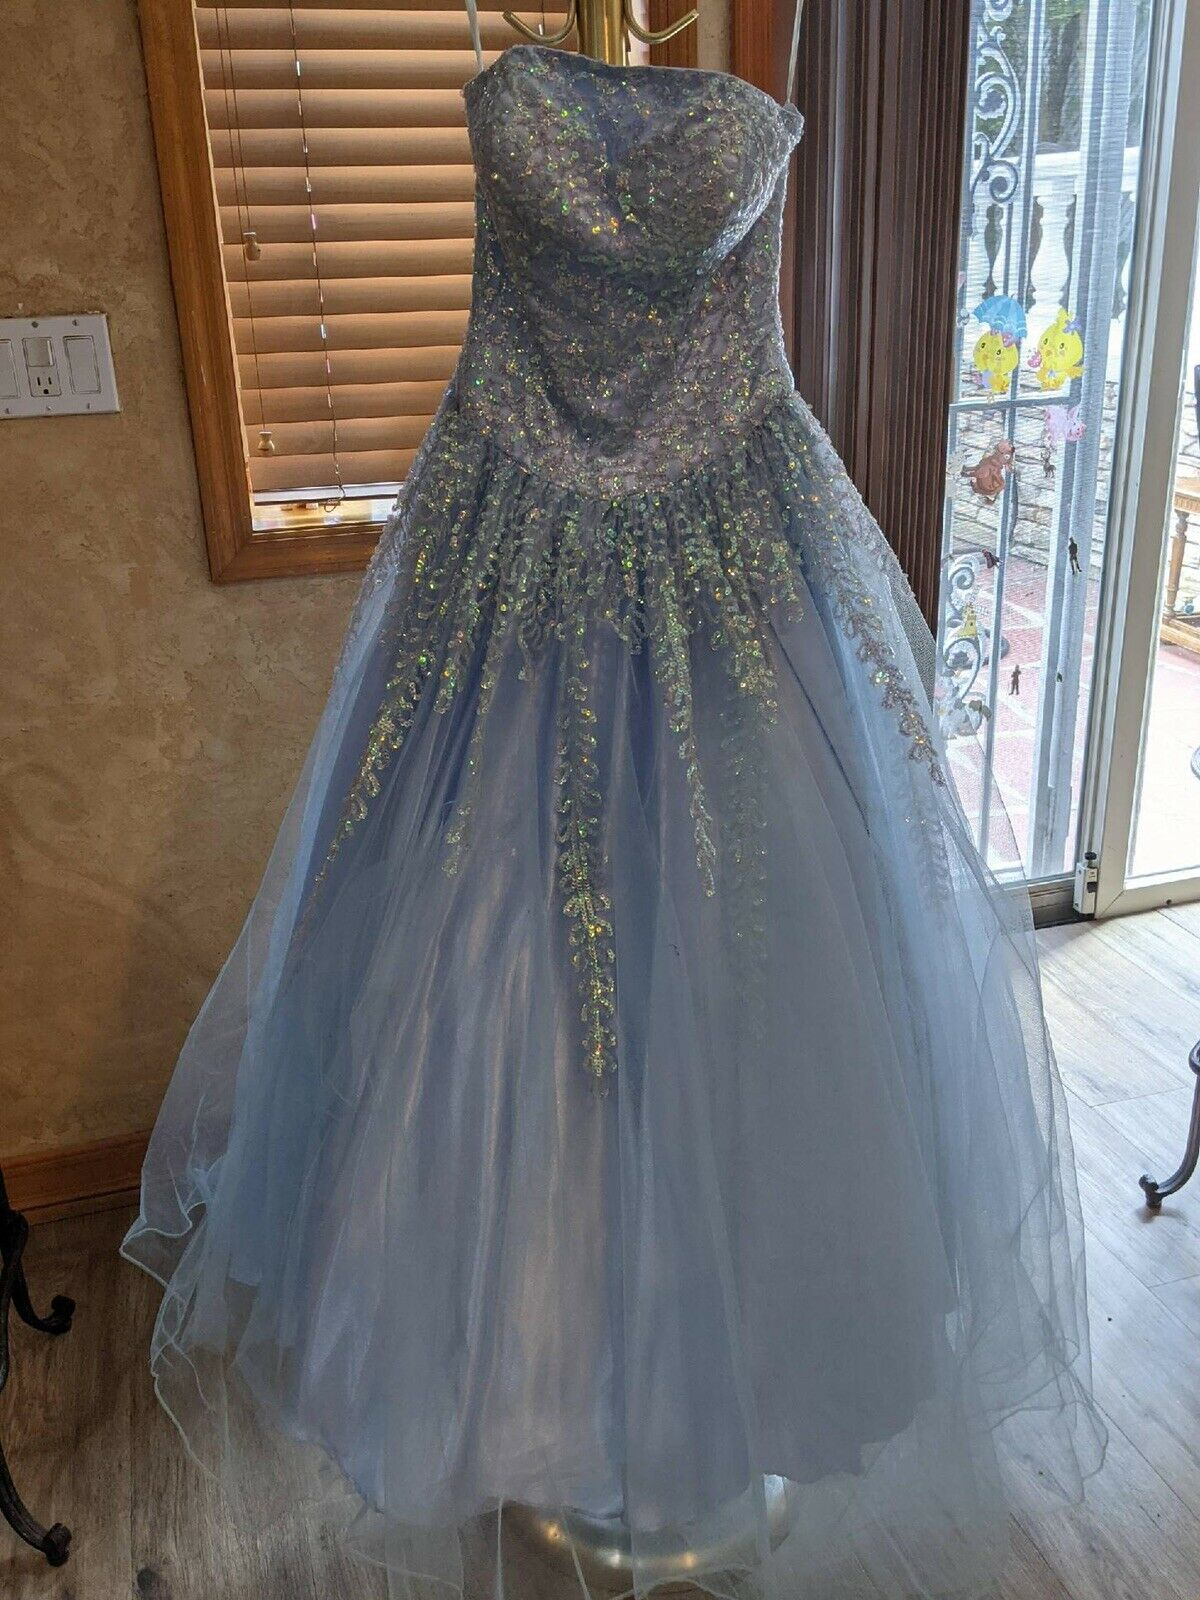 cinderella style  ball gown - image 2